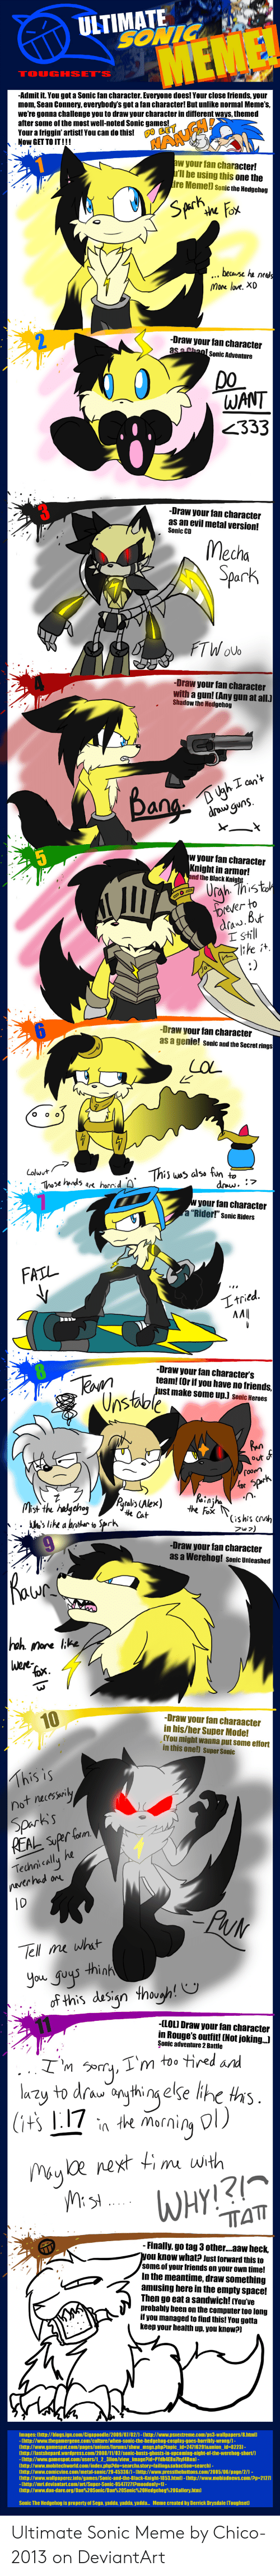 Werehog: ULTIMATE  MEN  an characterl But  the mest well-dSonic  Maw GETTOImI  w your tan characterl  be using this one the  Draw your lan character  2333  Draw your tan character  as an evil metal version  FTW ou  Draw your lan character  with a gun! (Any gun at all.  your lan character  sHll  the  Draw your tan character  as a gente!  your tm character  ЛА.  Draw your tan characters  eamDrl you have no triends  make some upi s  Alex)e  -Draw your lan character  as a Werehog sae usted  hah naneke  Draw your ftan charaacter  in his/her Super Made  10  ls this east  fthi dasijn though!  ILOU Draw your fan character  wloe next time with  inally.go tag 3 otheraawheck  know whatP lustlorward this  In the meantime, draw semething  amusing here in the empty space!  Then go eat a sandwichl ou  beep your health pyau knaw Ultimate Sonic Meme by Chico-2013 on DeviantArt